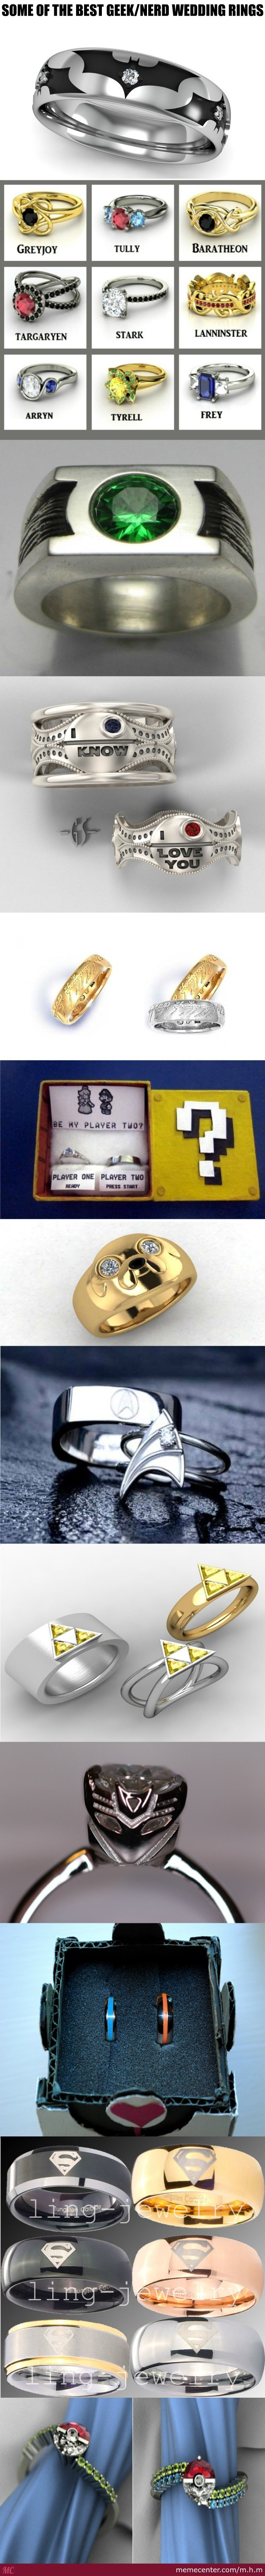 rings nerdy wedding weird with patsveg mens ring and bolt crazy bands togeteher nerd com of nut